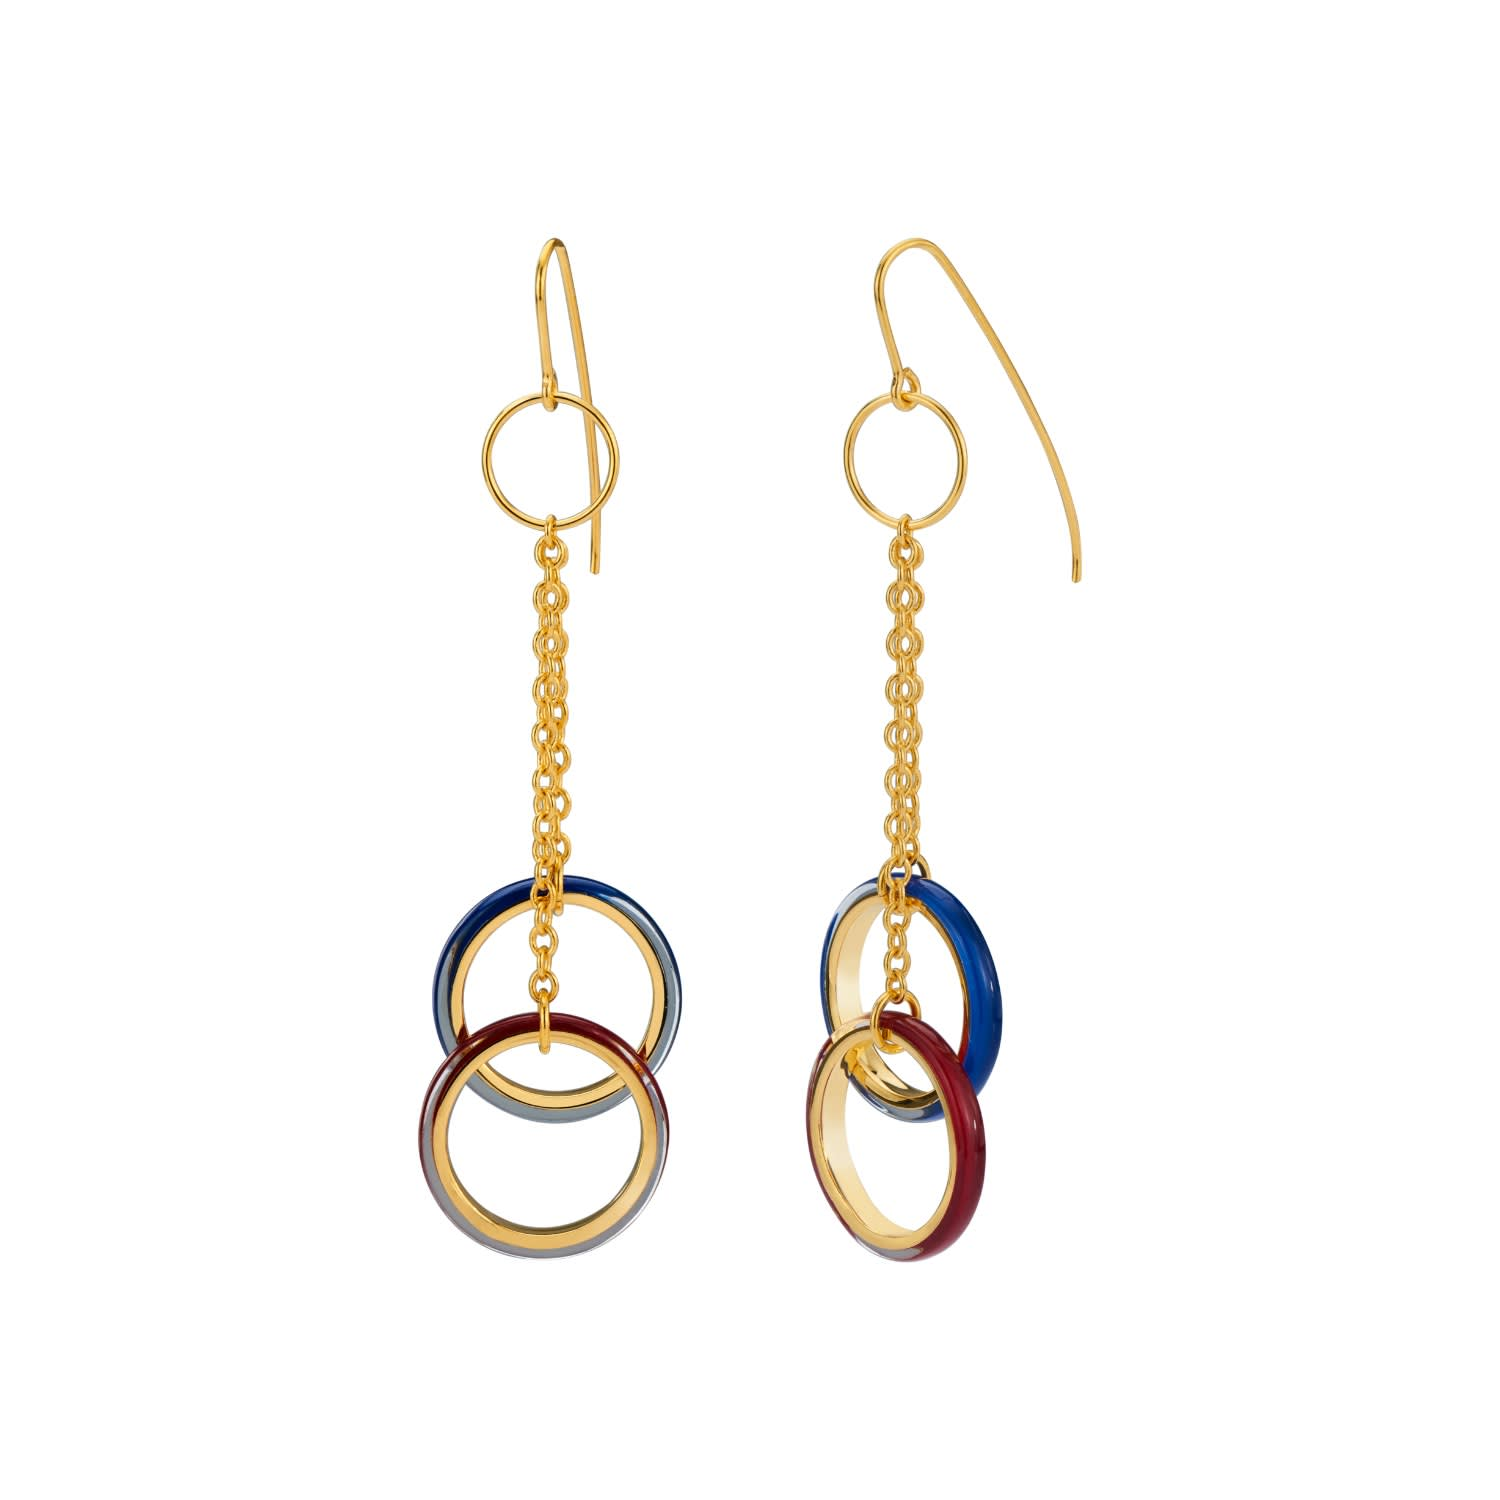 Artisan Earrings Handcrafted Double Drop Earrings Sterling and 14k Gold Filled